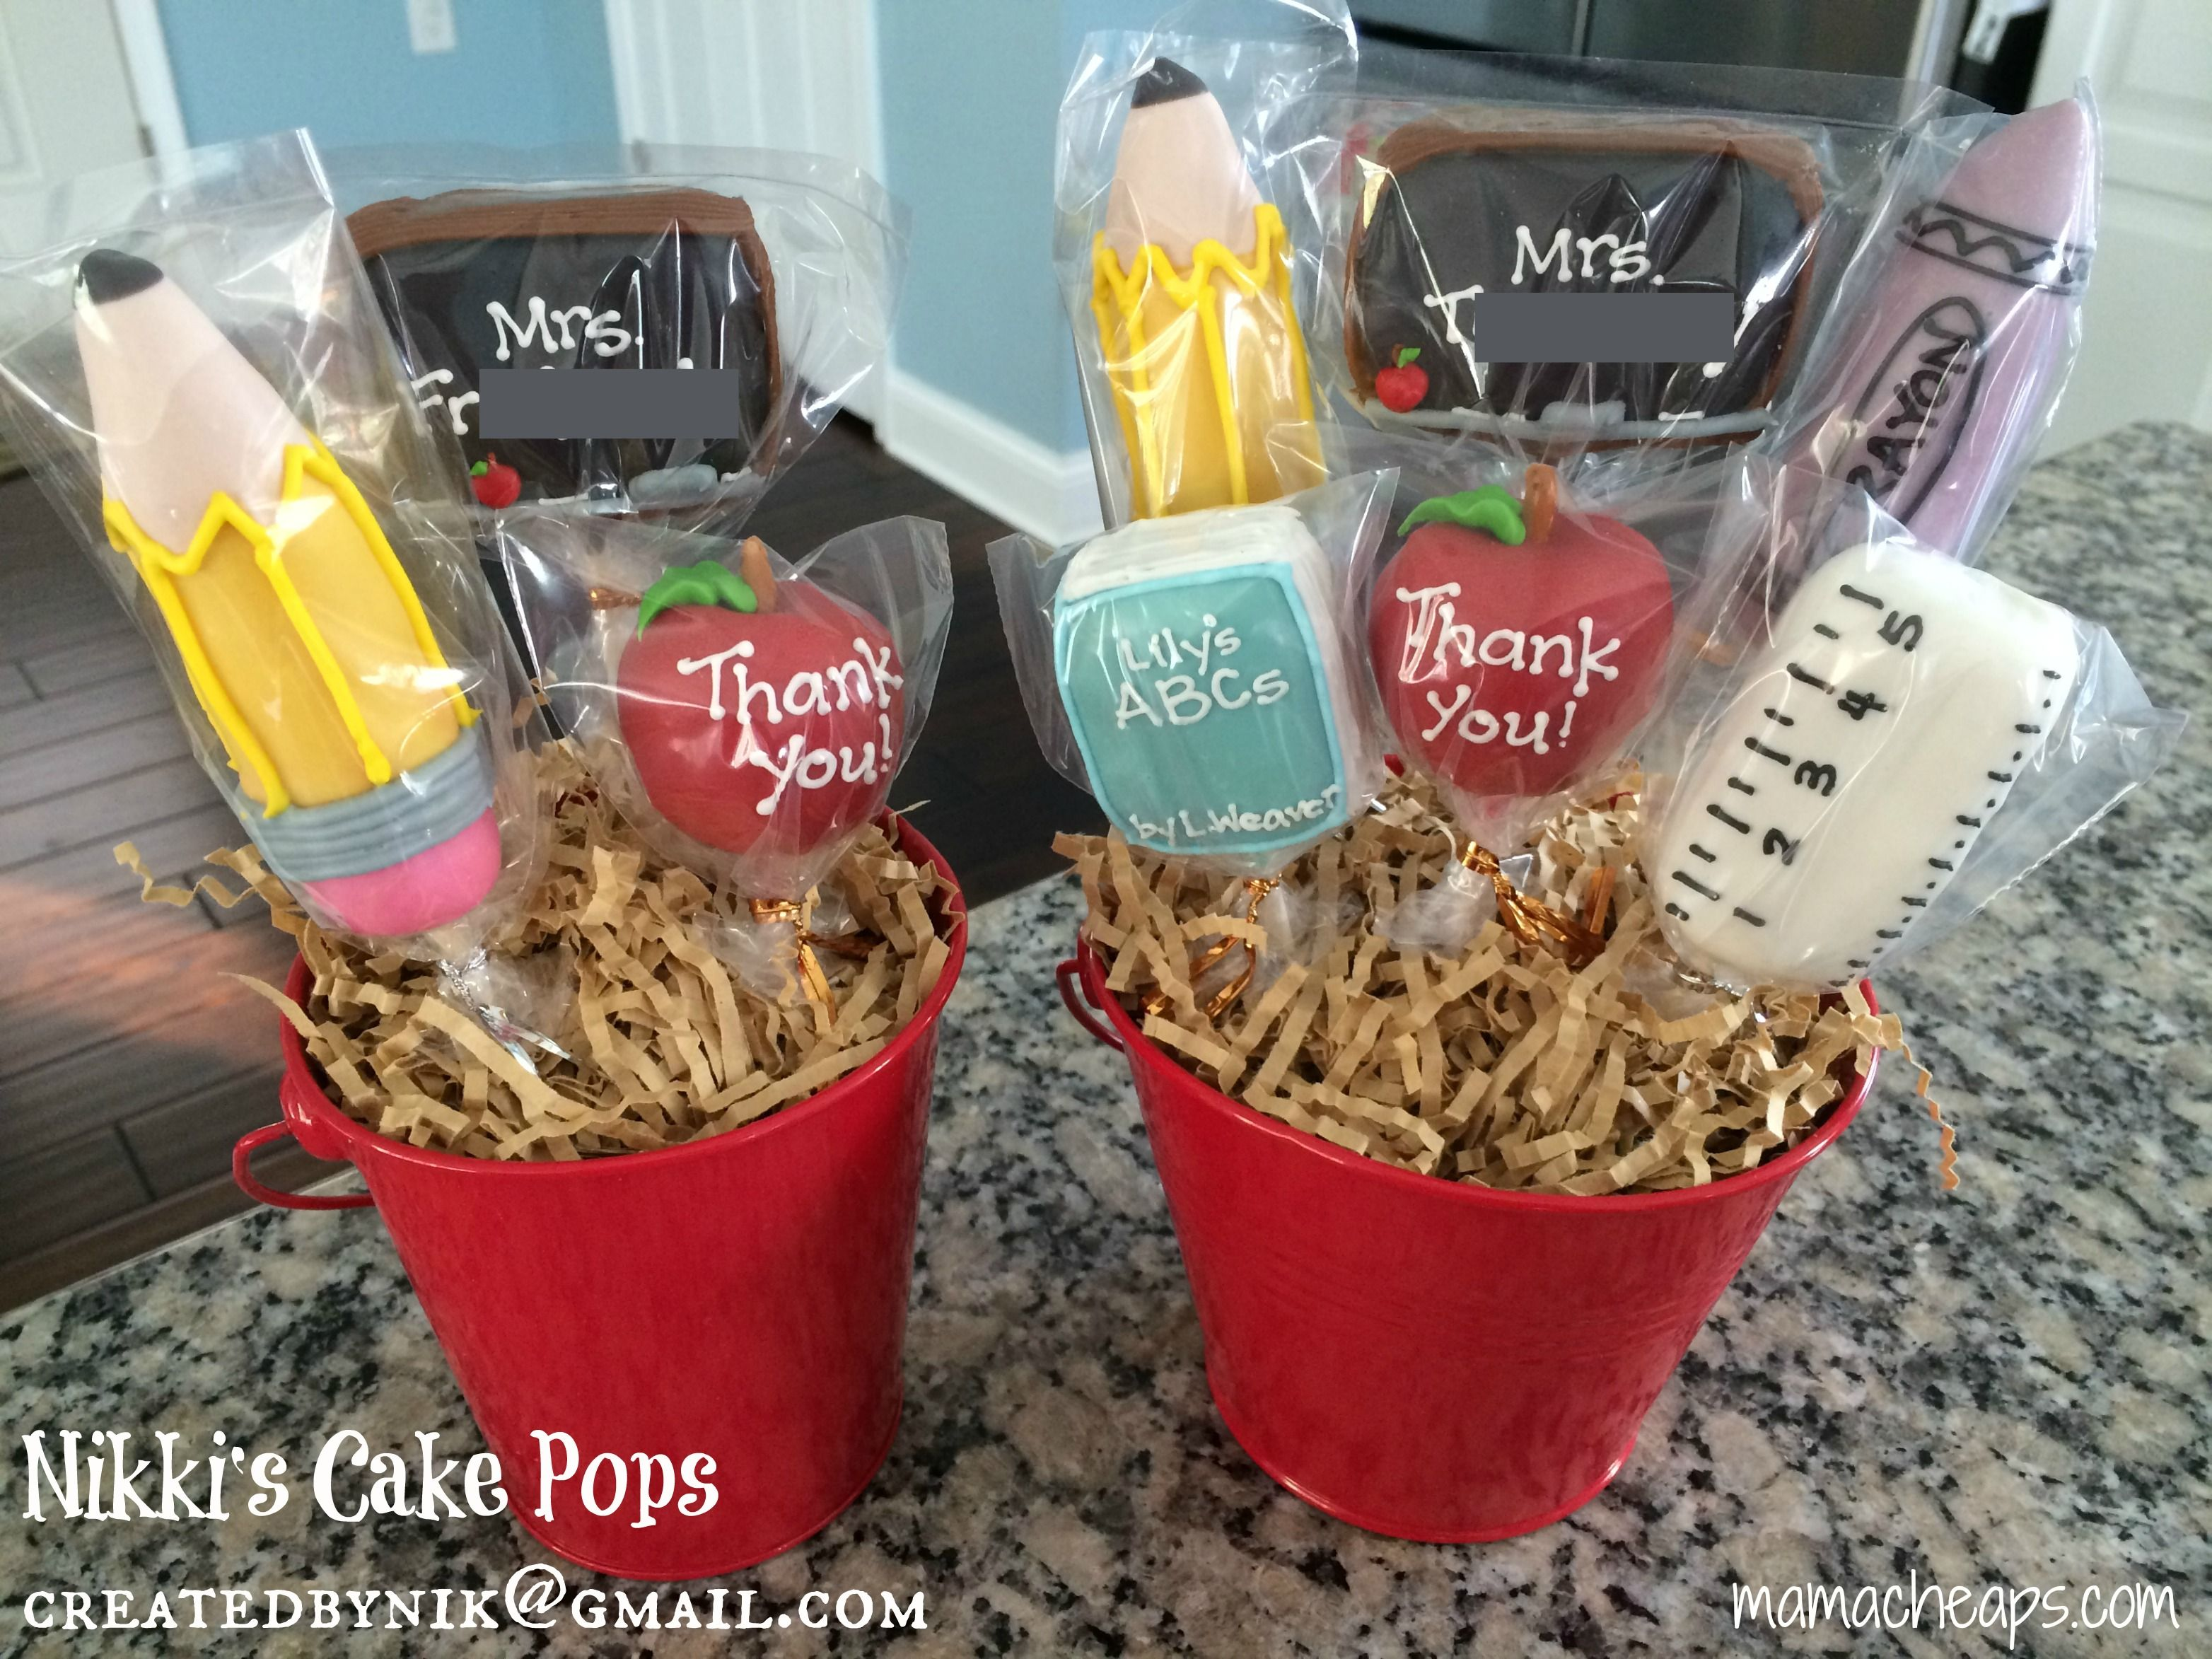 Gmail marker theme - These Were Made By Nikki S Cake Pops Createdbynik Gmail